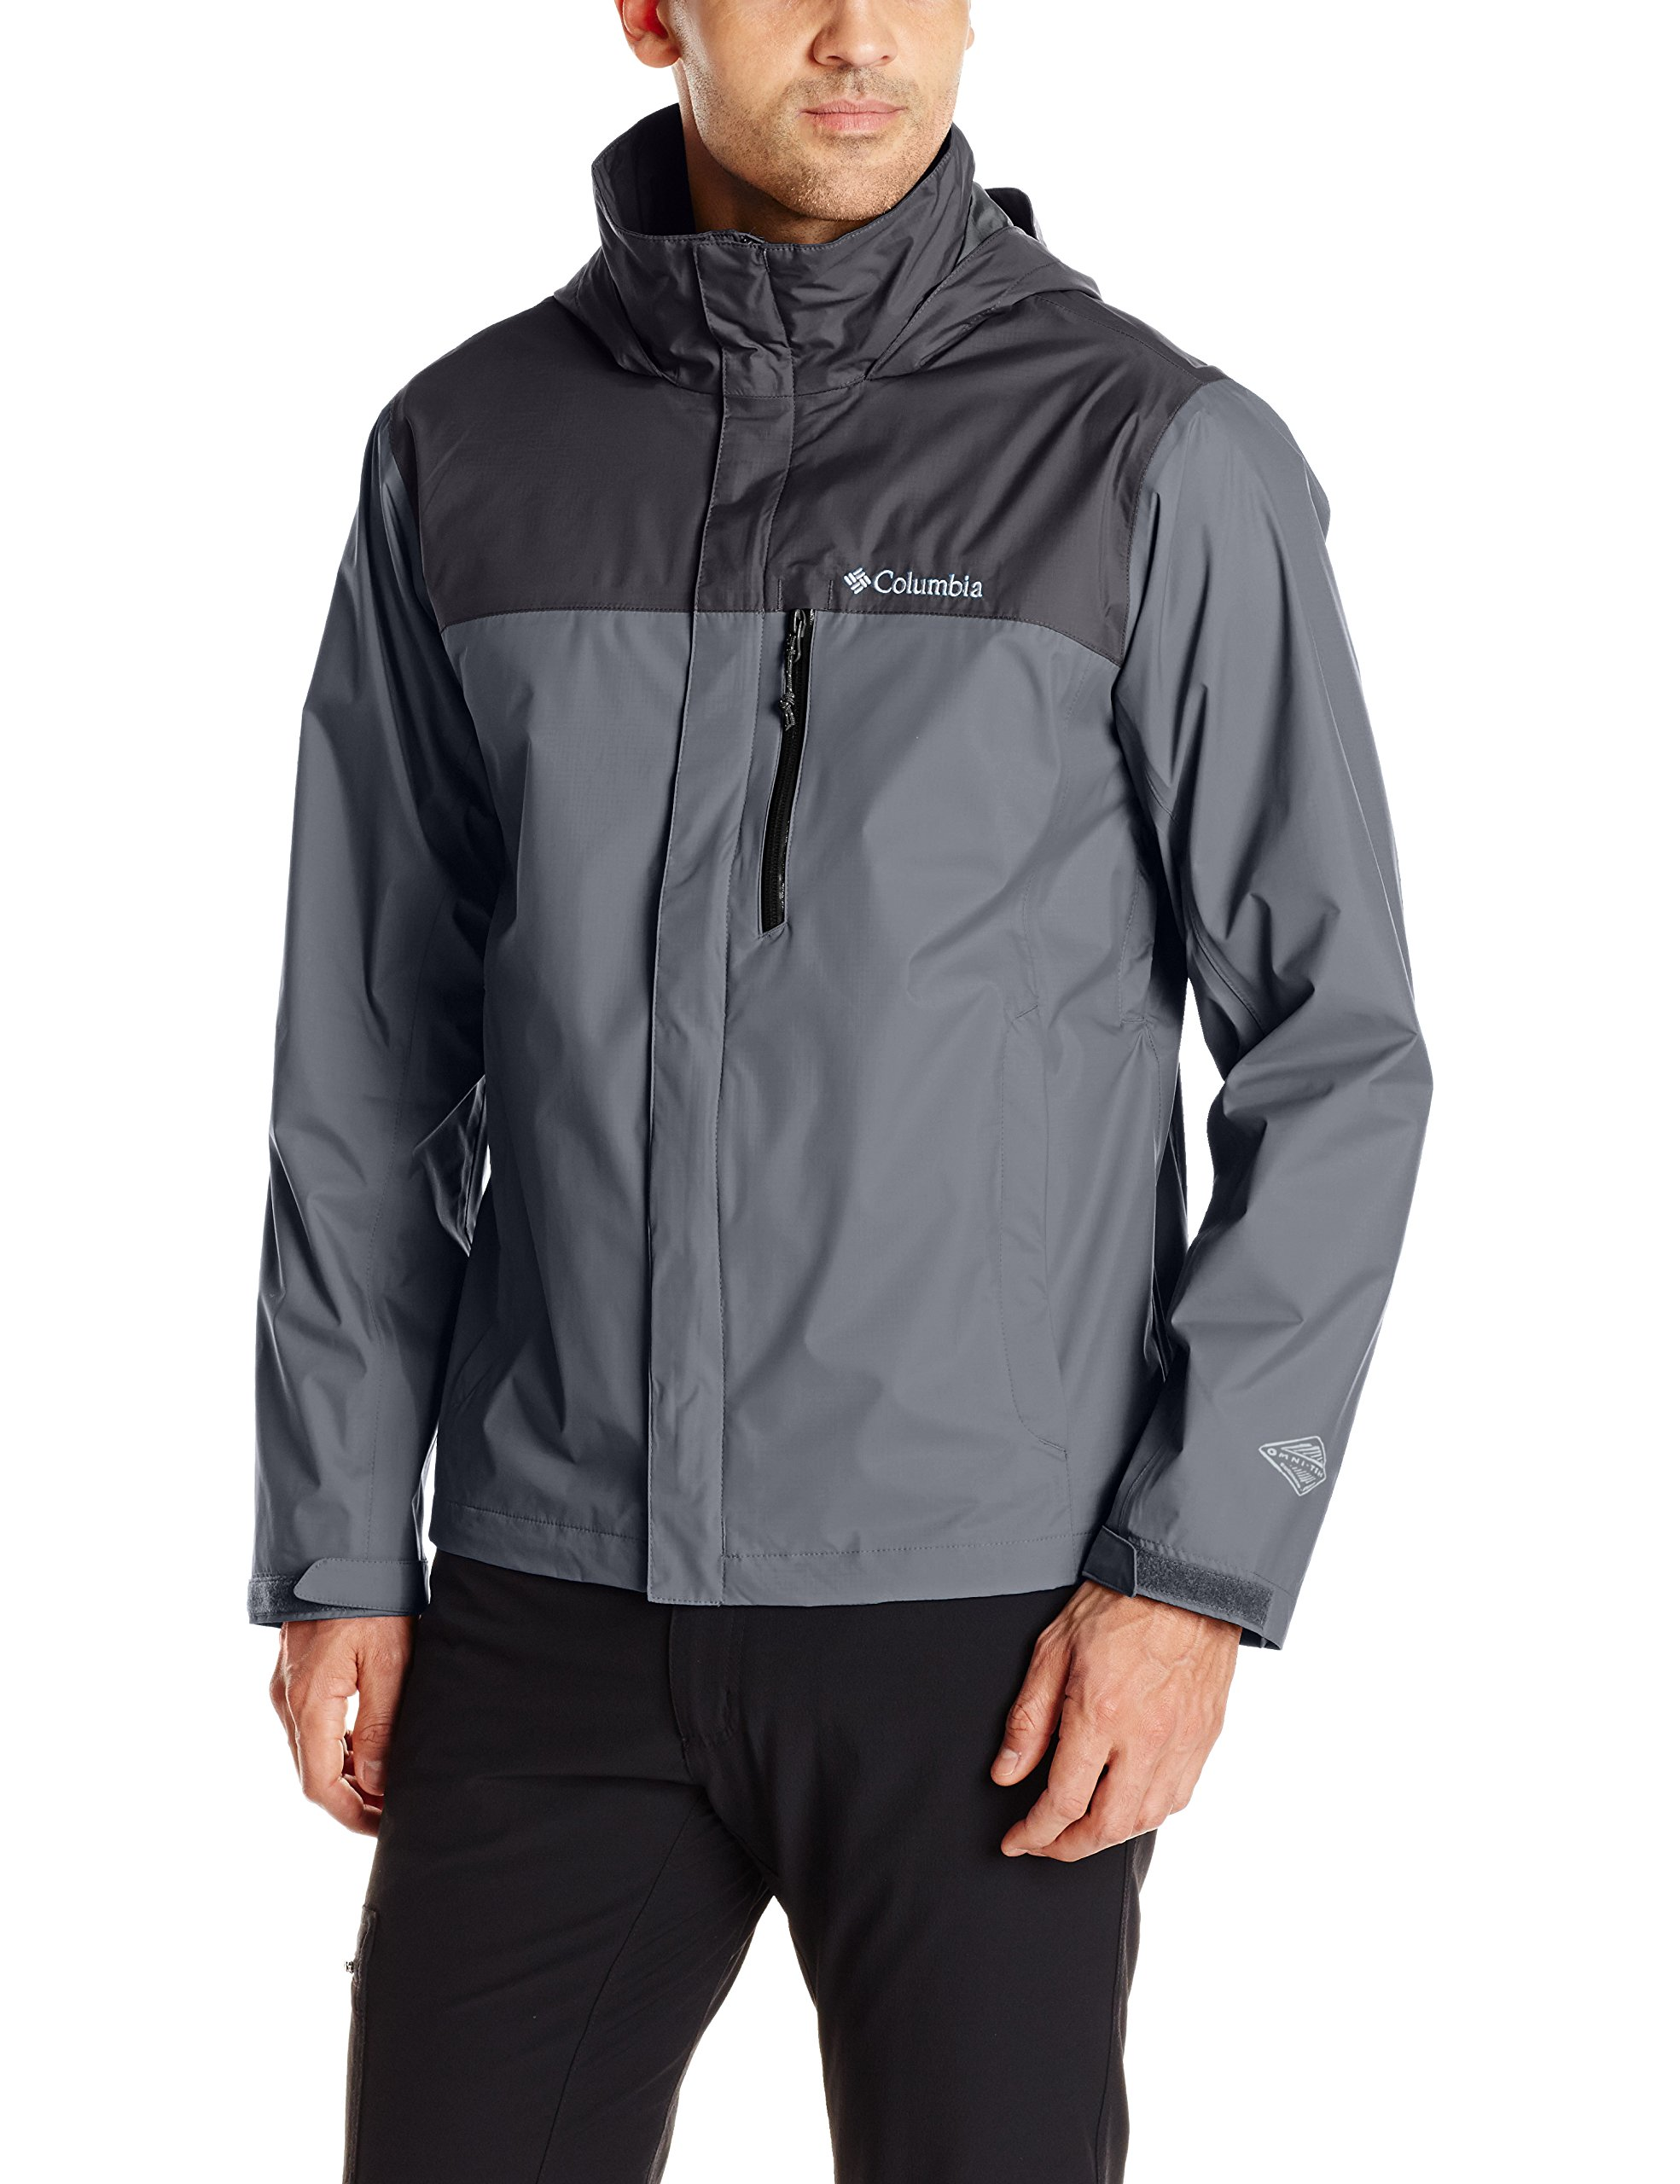 Columbia Men's Pouration Jacket, Graphite/Black, Small